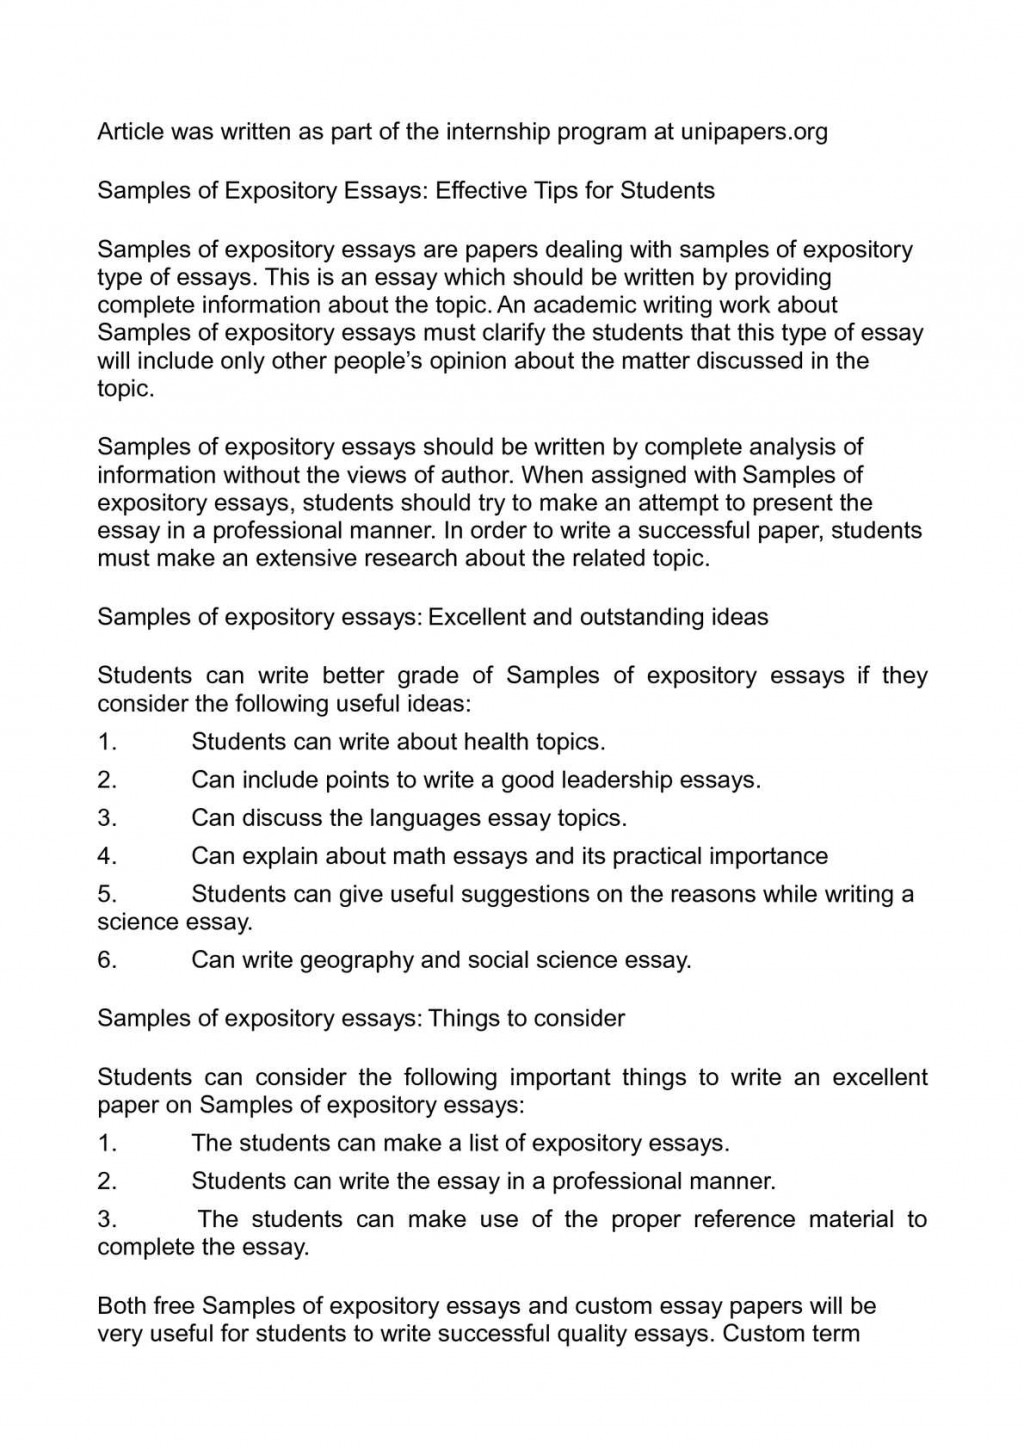 014 Essay Example P1 On Importance Of Social Rare Science Large